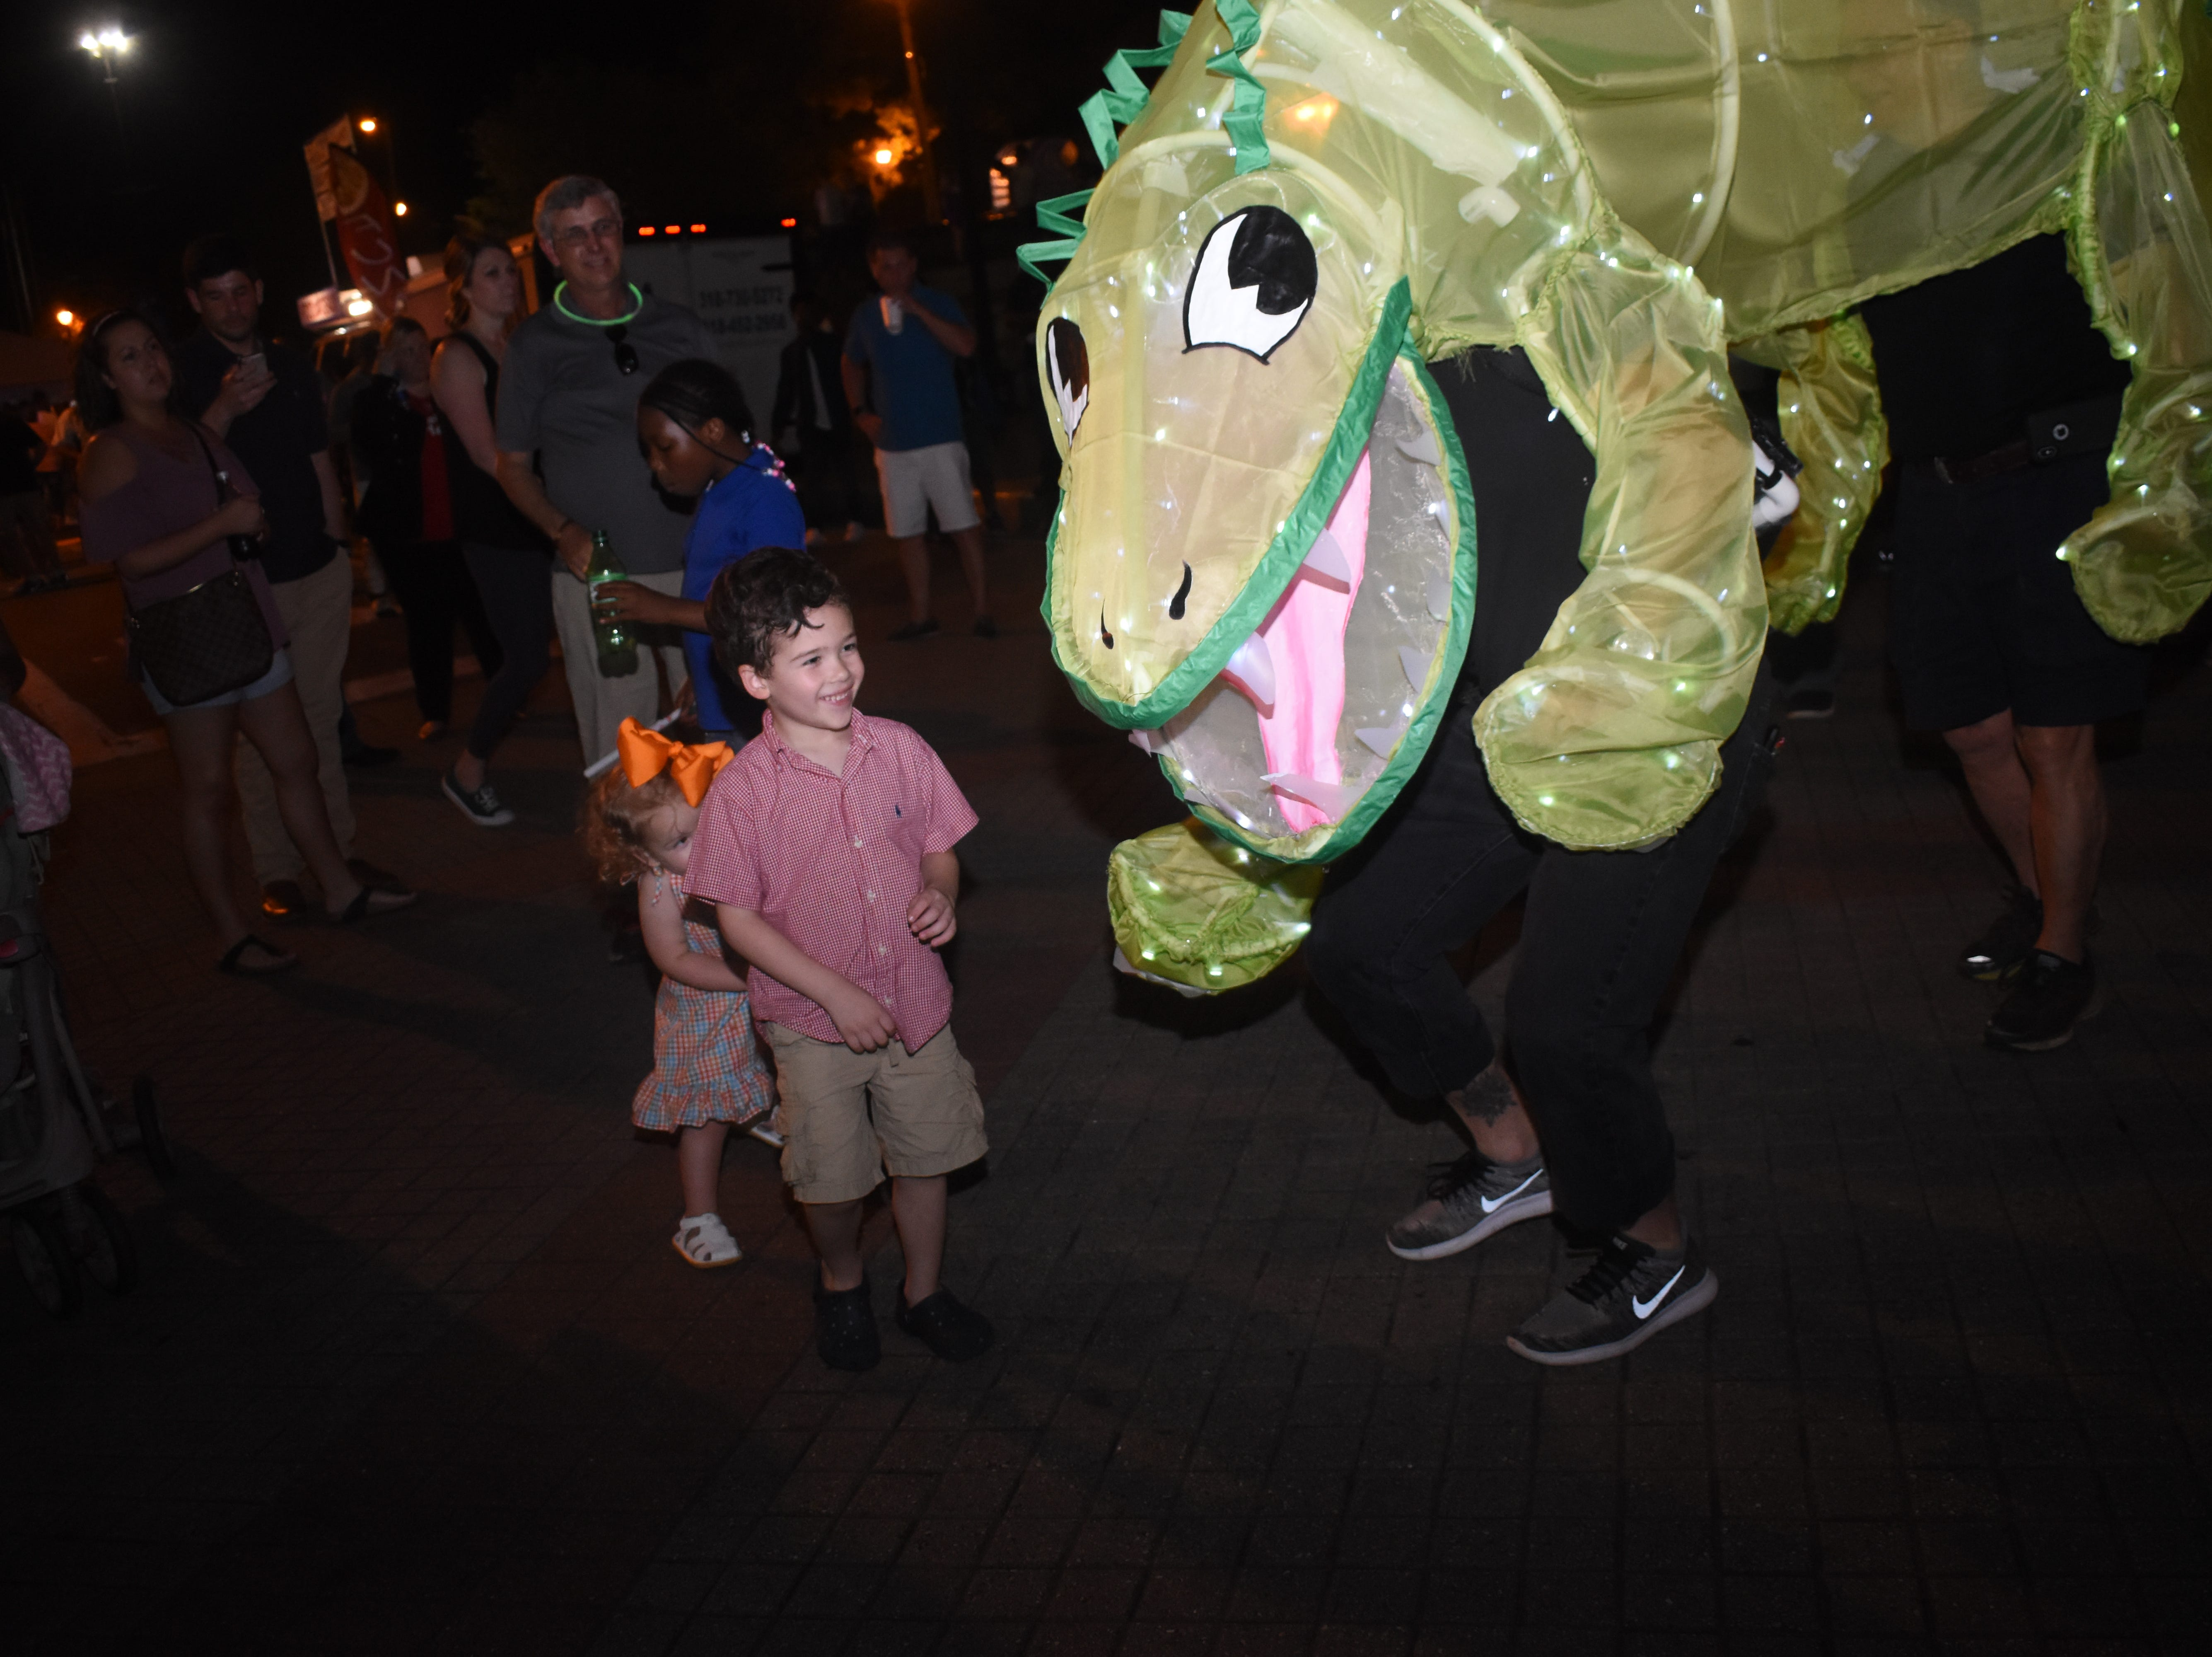 The Alexandria Red River Festival kicked off Friday, May 3, 2019 in downtown Alexandria with vendors, street performers and live music. The Alexandria Museum of Art held their Spring Illuminate the Arts Procession through downtown included various characters, animals and objects illuminated by lights. The Red River Festival continues Saturday along with with a bbq cookoff, classic car and truck show. The Louisiana Dragon Boat Races will be held at Lake Buhlow in Pineville starting at 9 a.m.